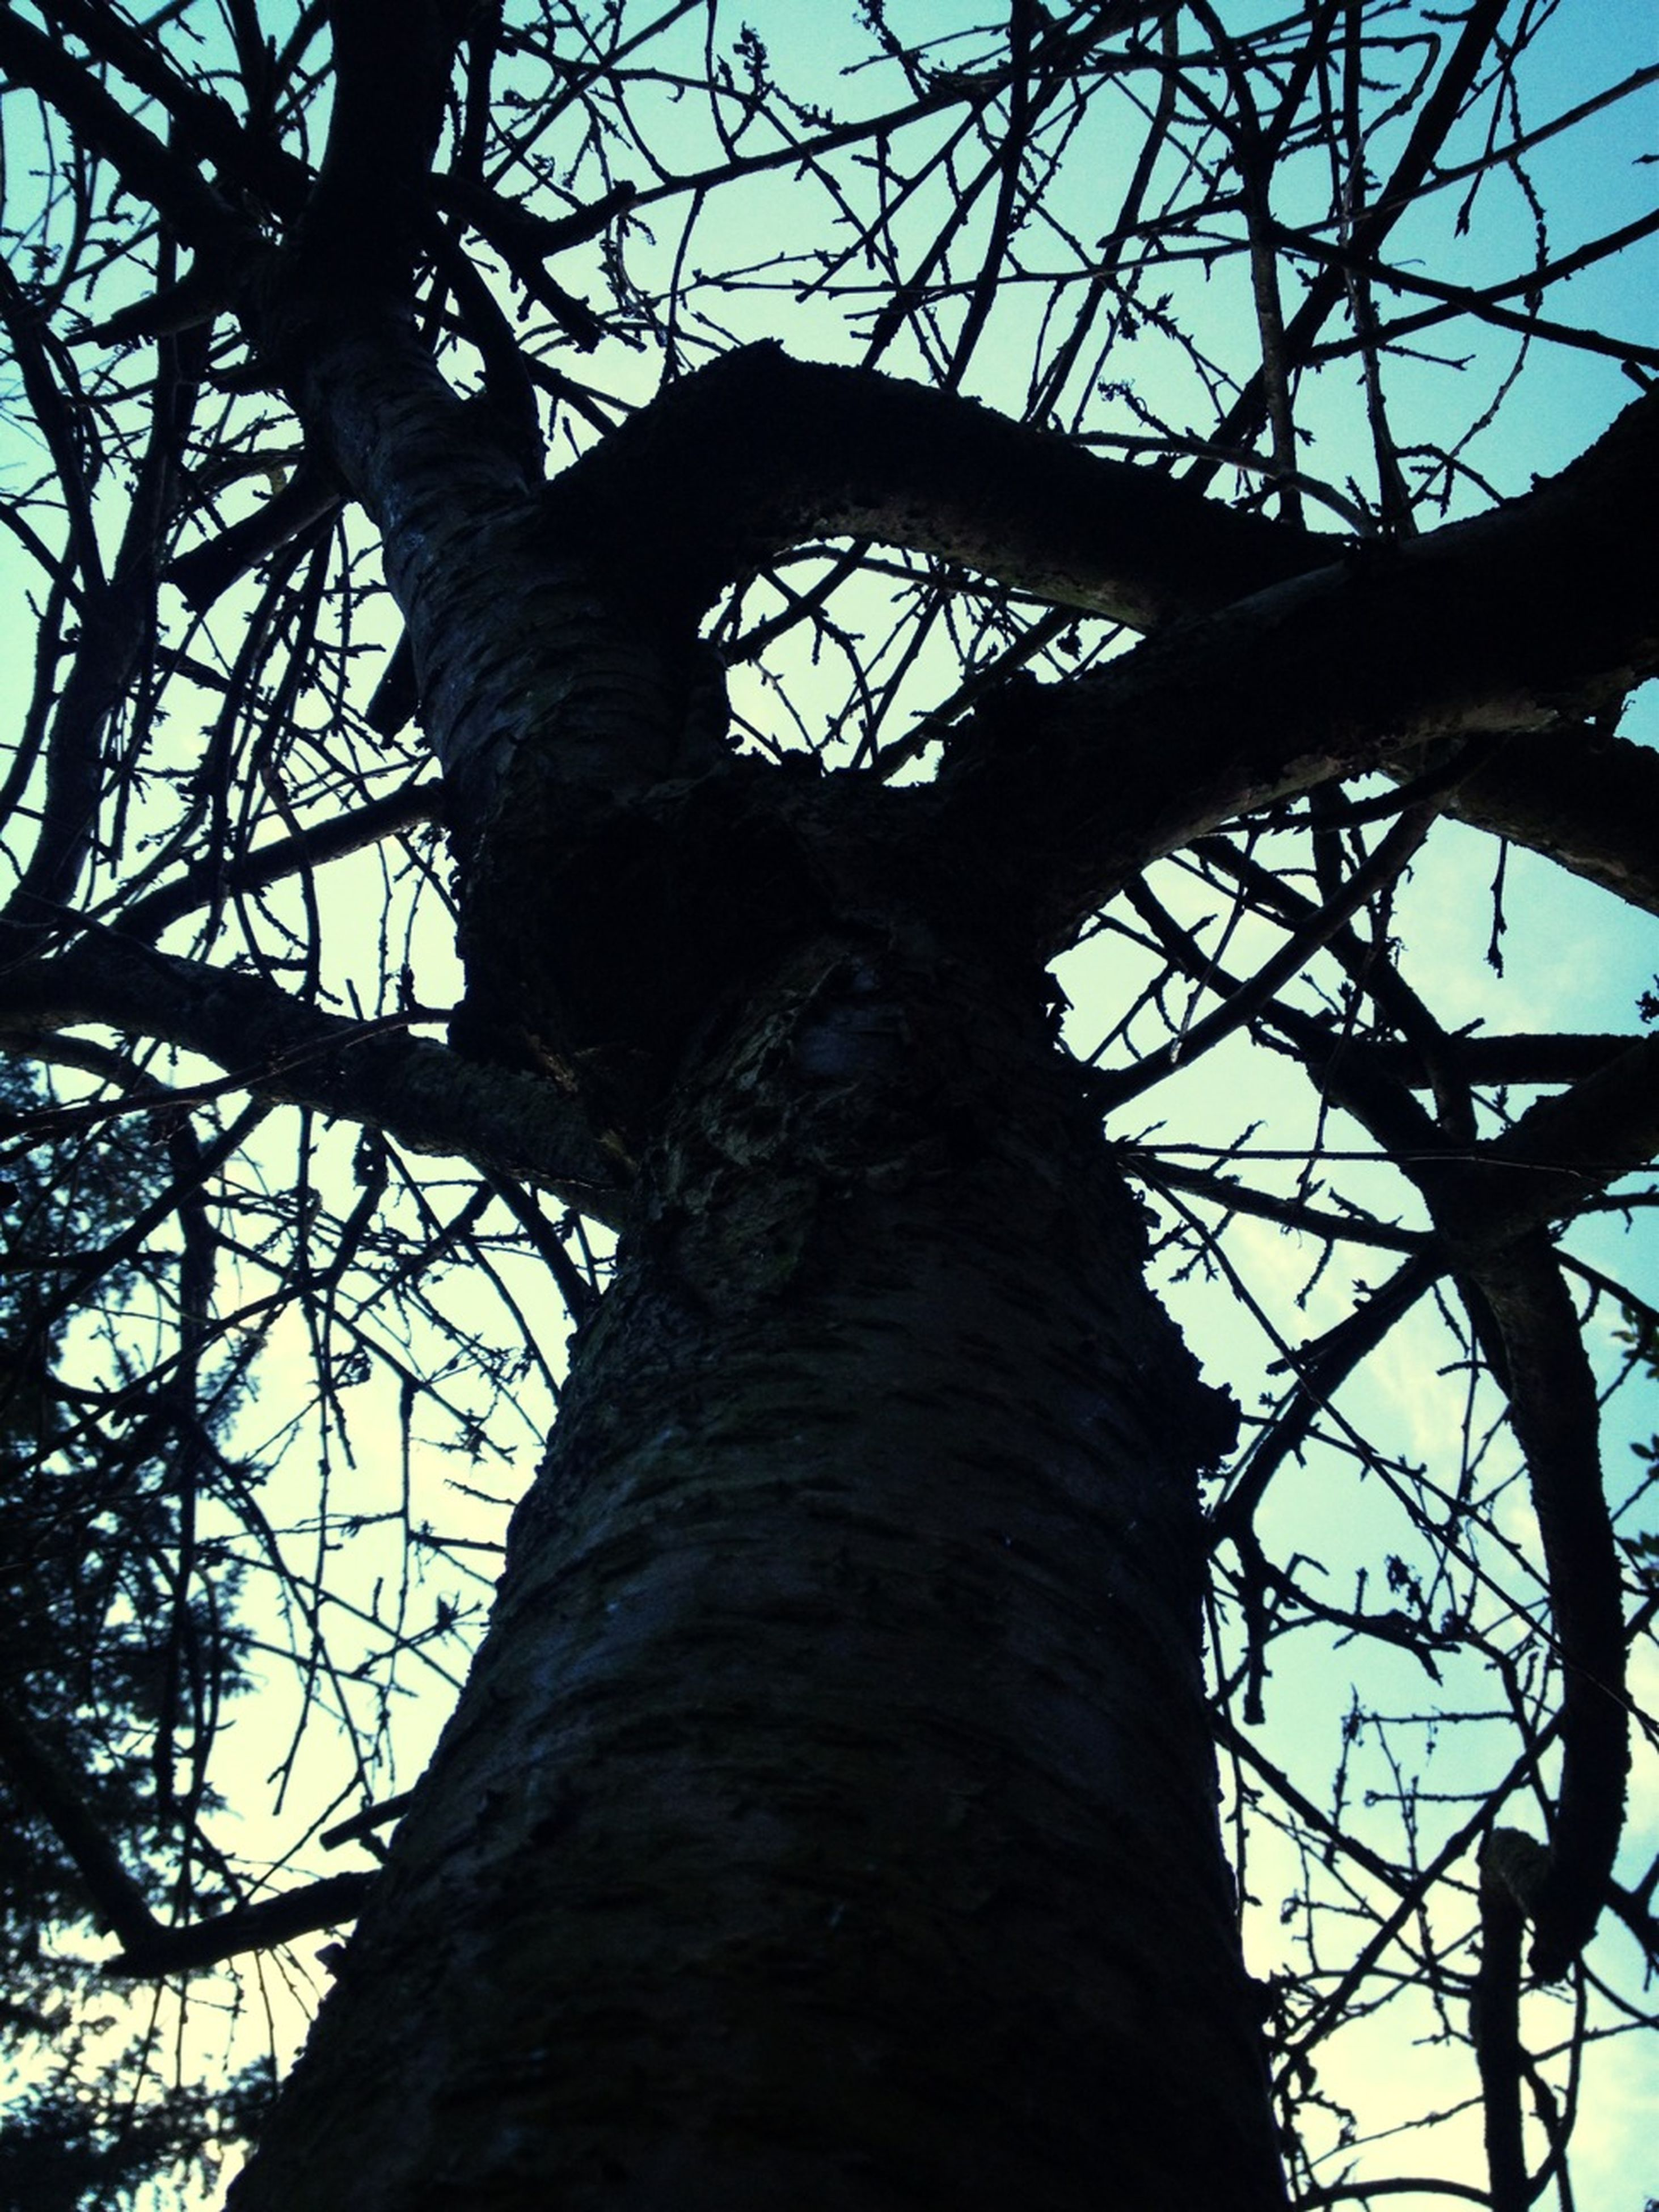 low angle view, tree, branch, bare tree, tree trunk, sky, nature, silhouette, outdoors, no people, day, tranquility, clear sky, textured, wood - material, bark, close-up, growth, large, sunlight